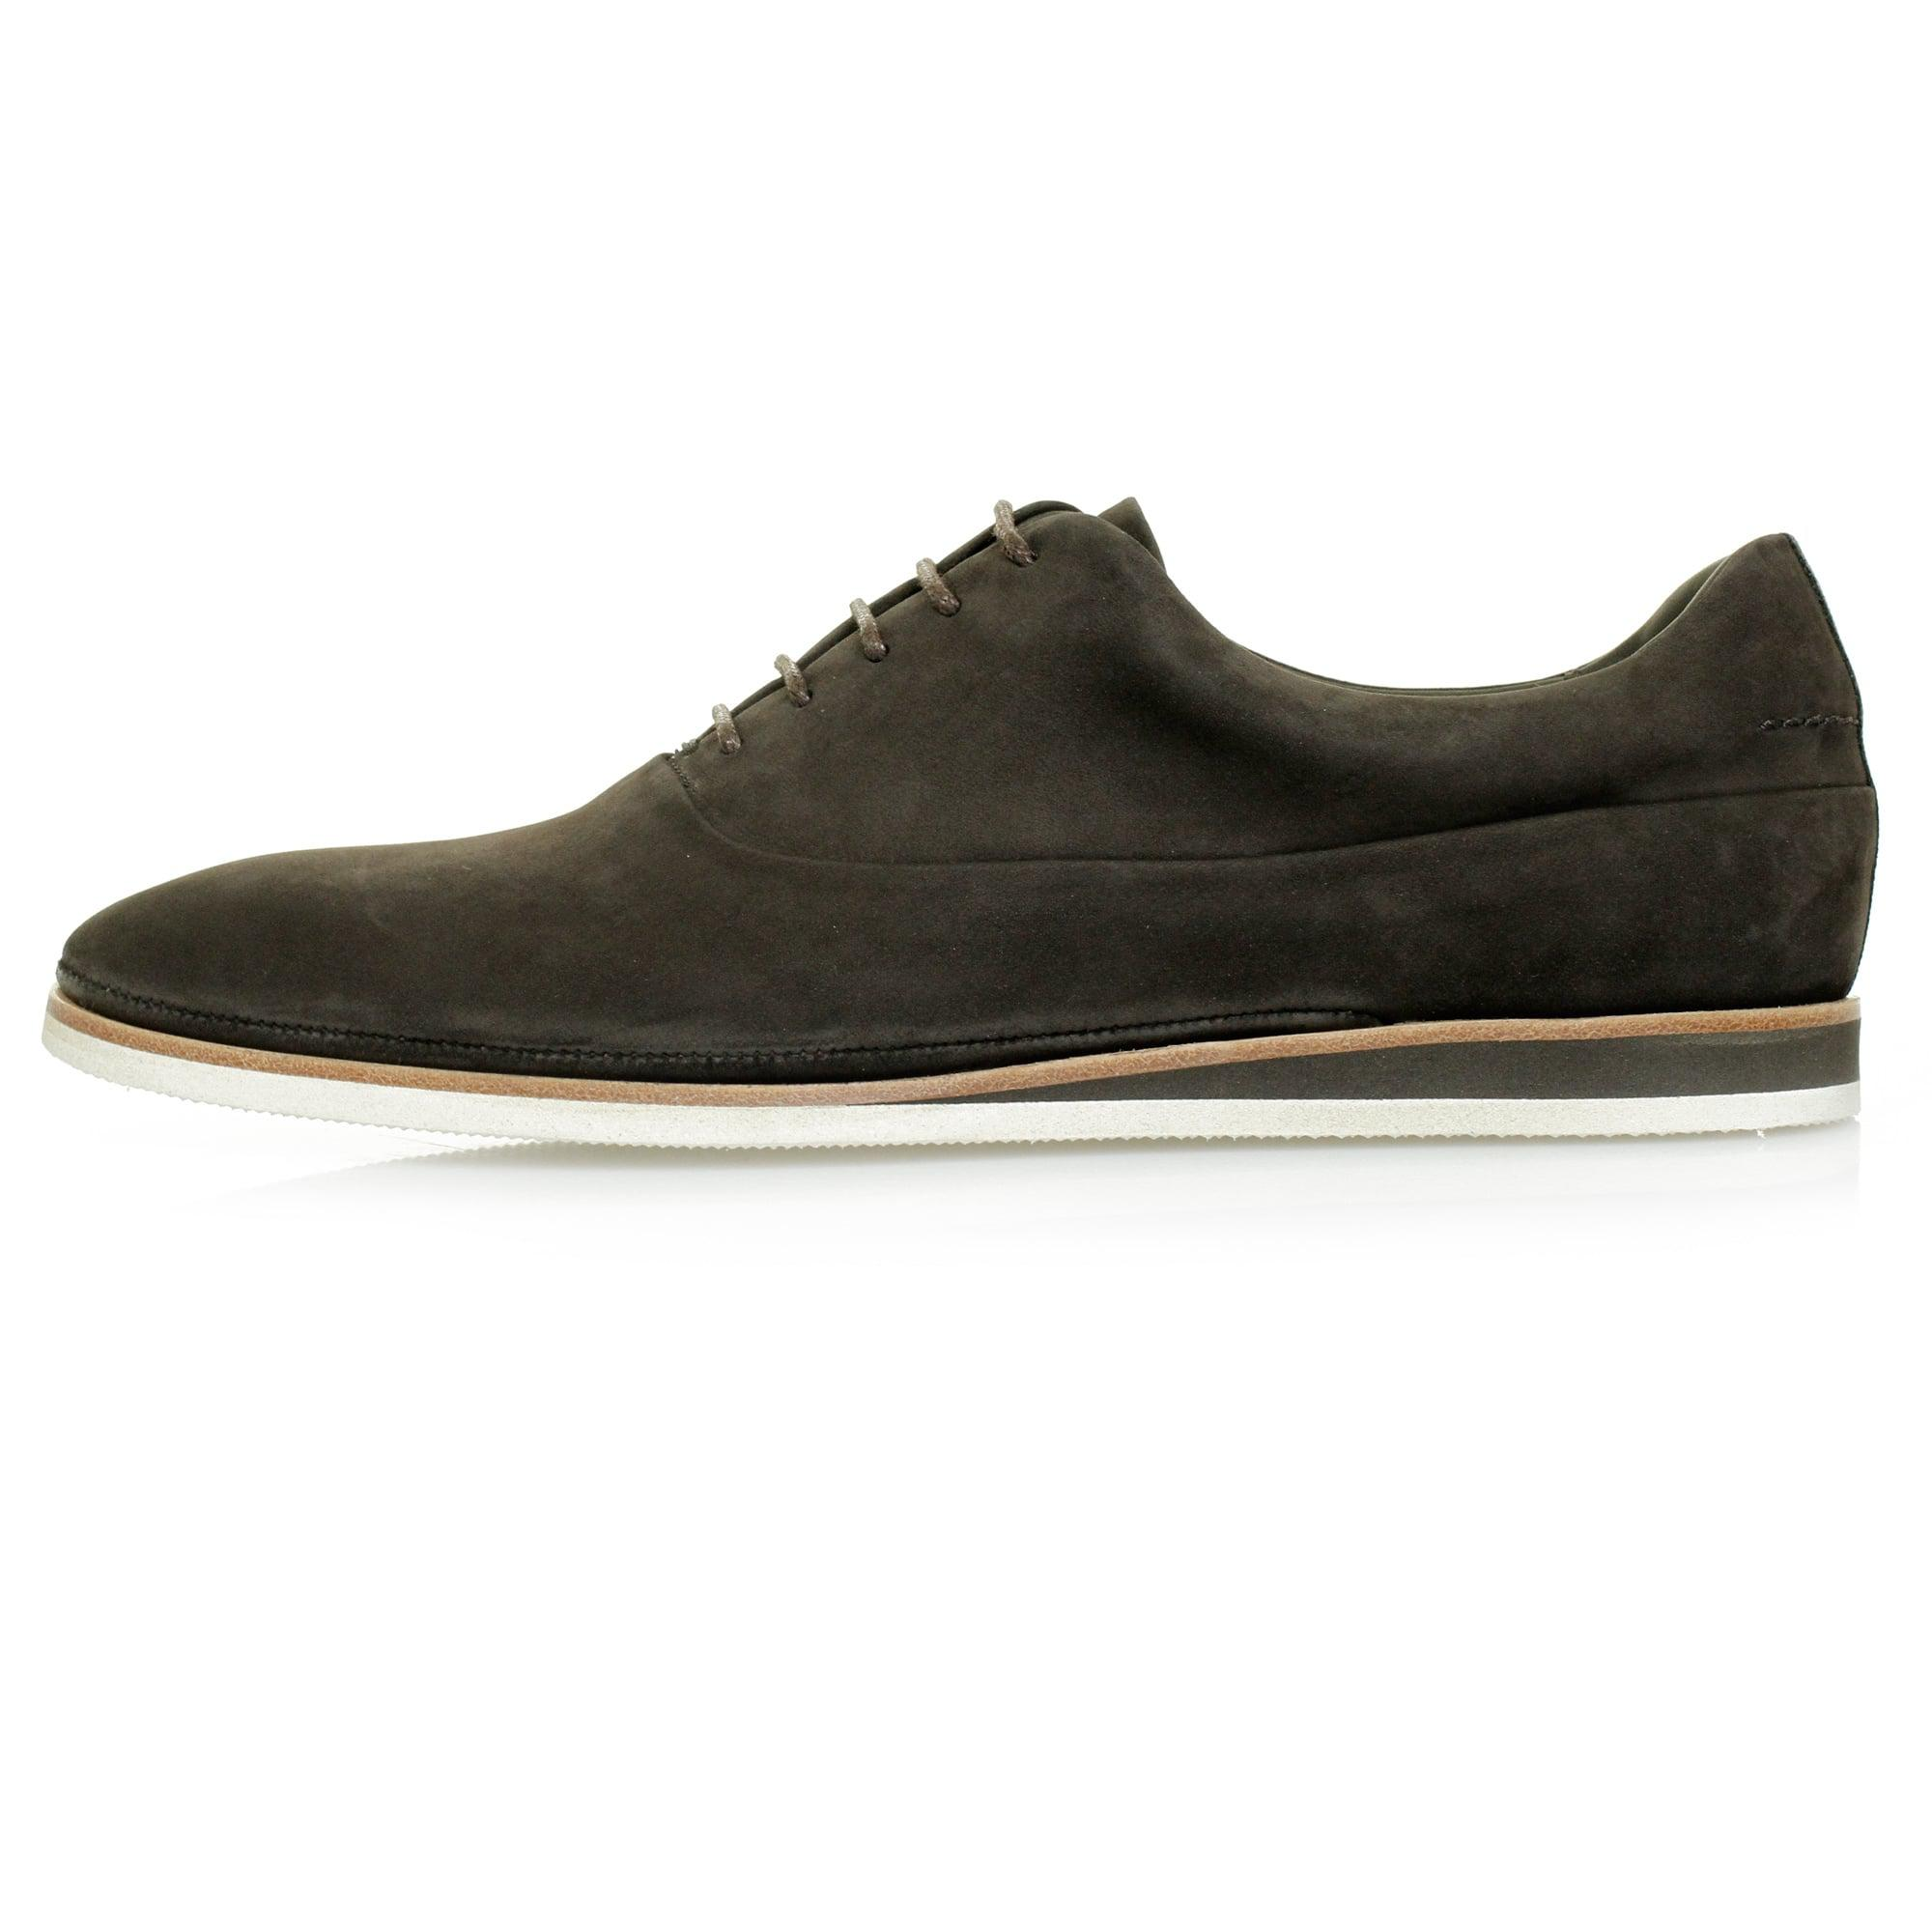 Casual Oxford shoes in soft nubuck BOSS 3ciToozkh